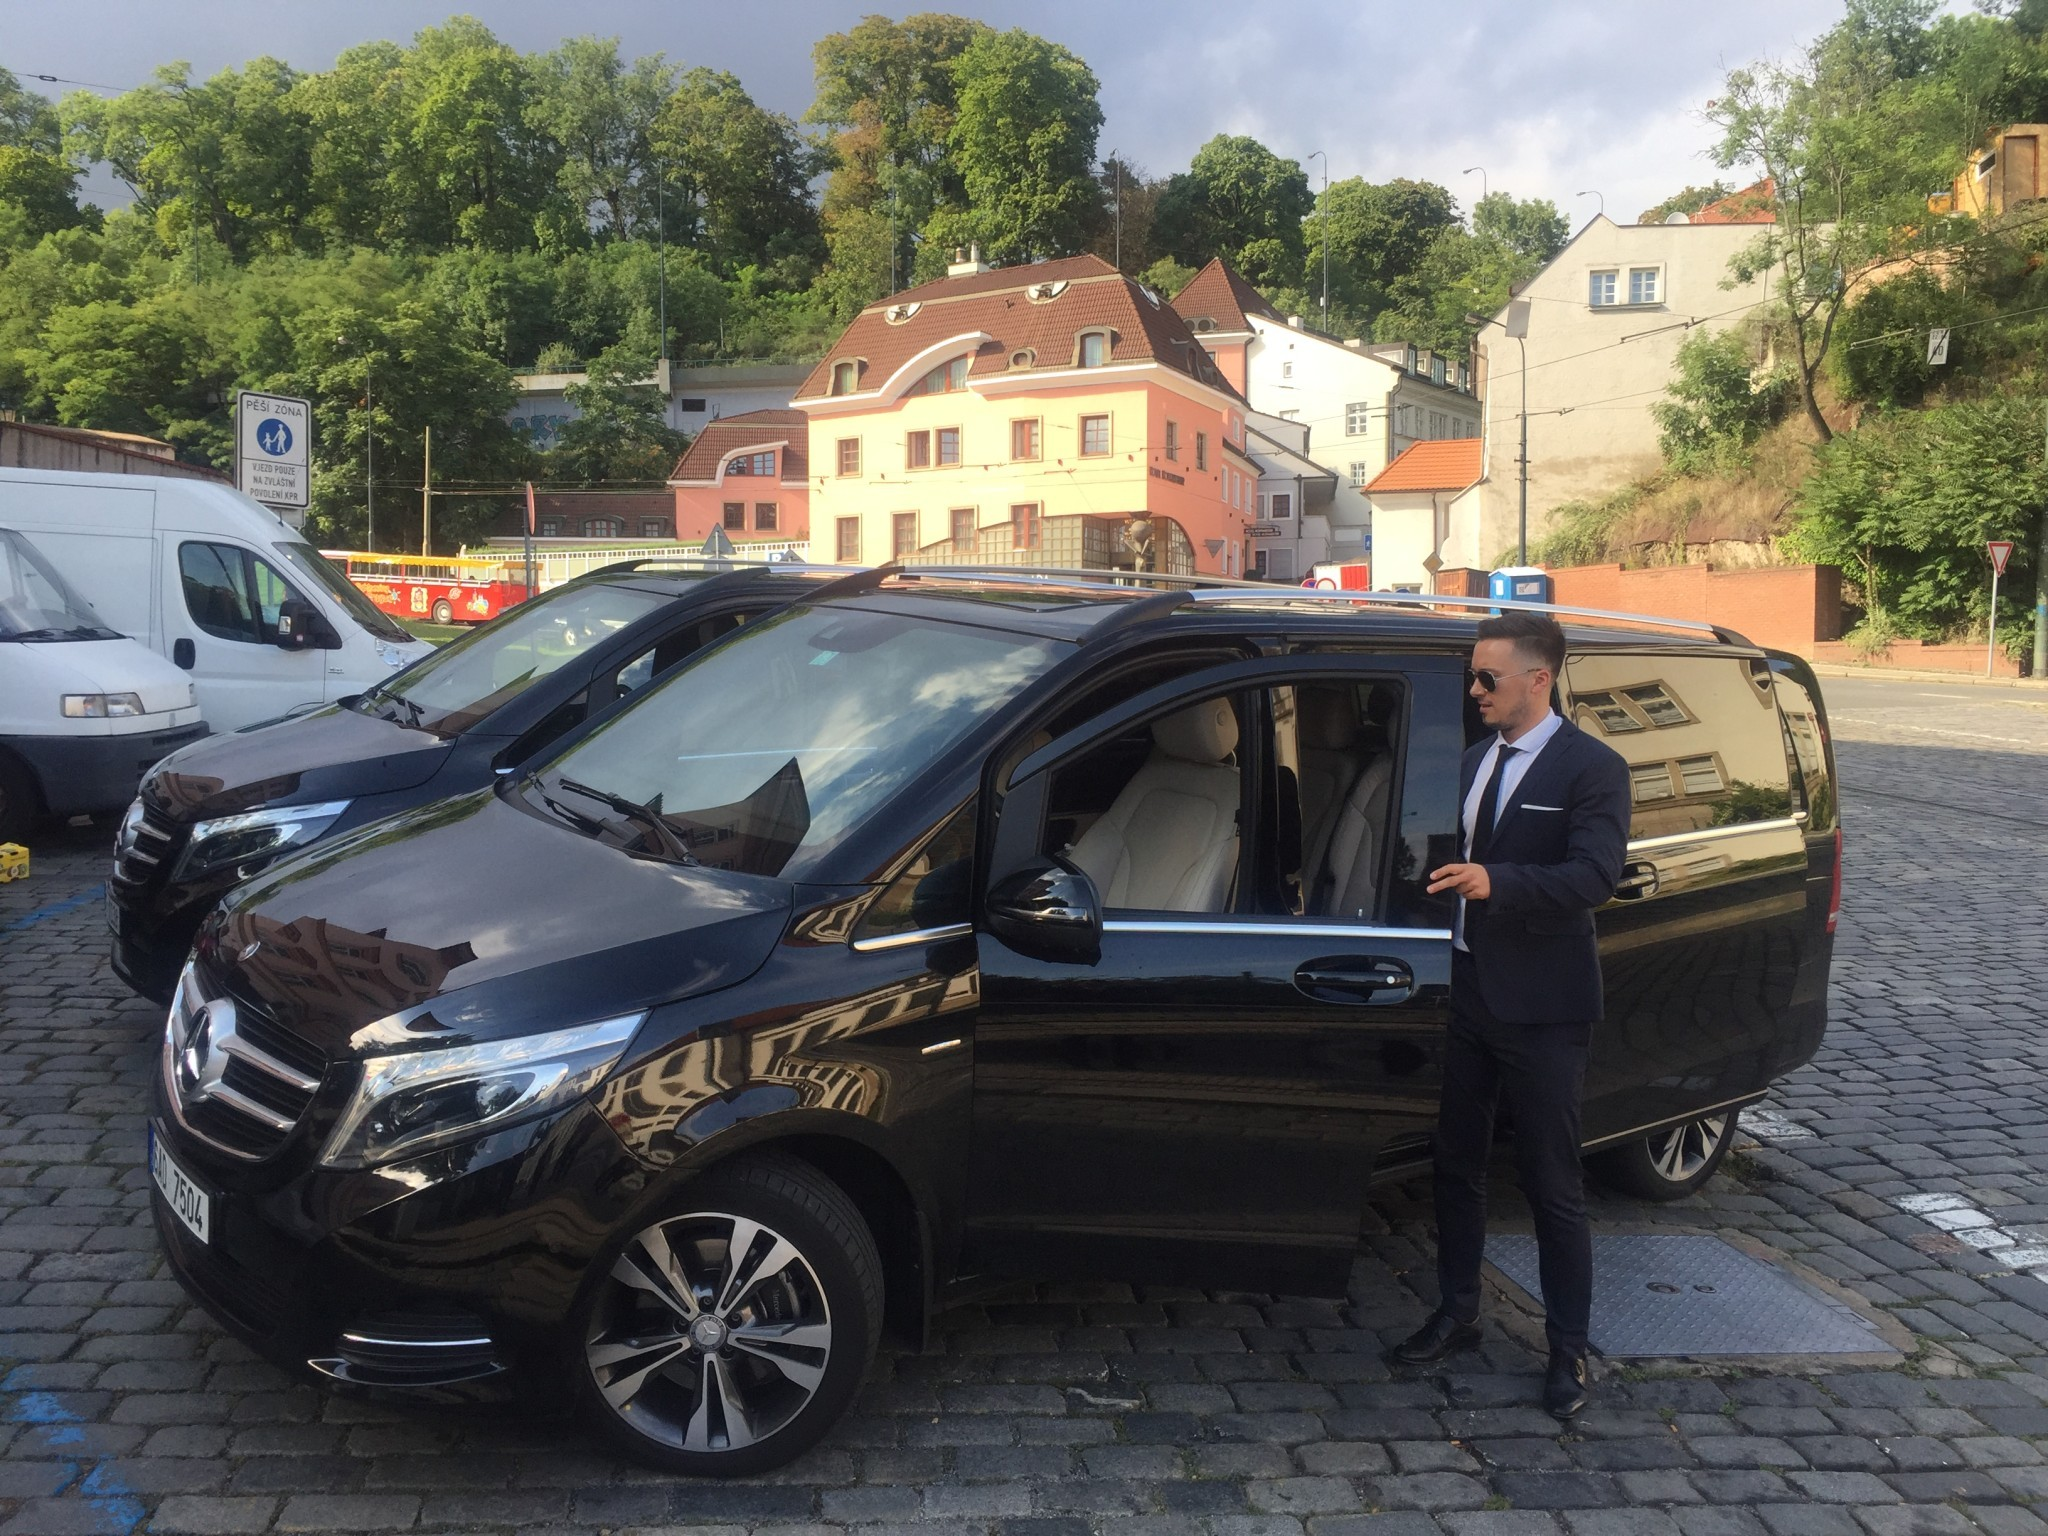 van with driver hire prague